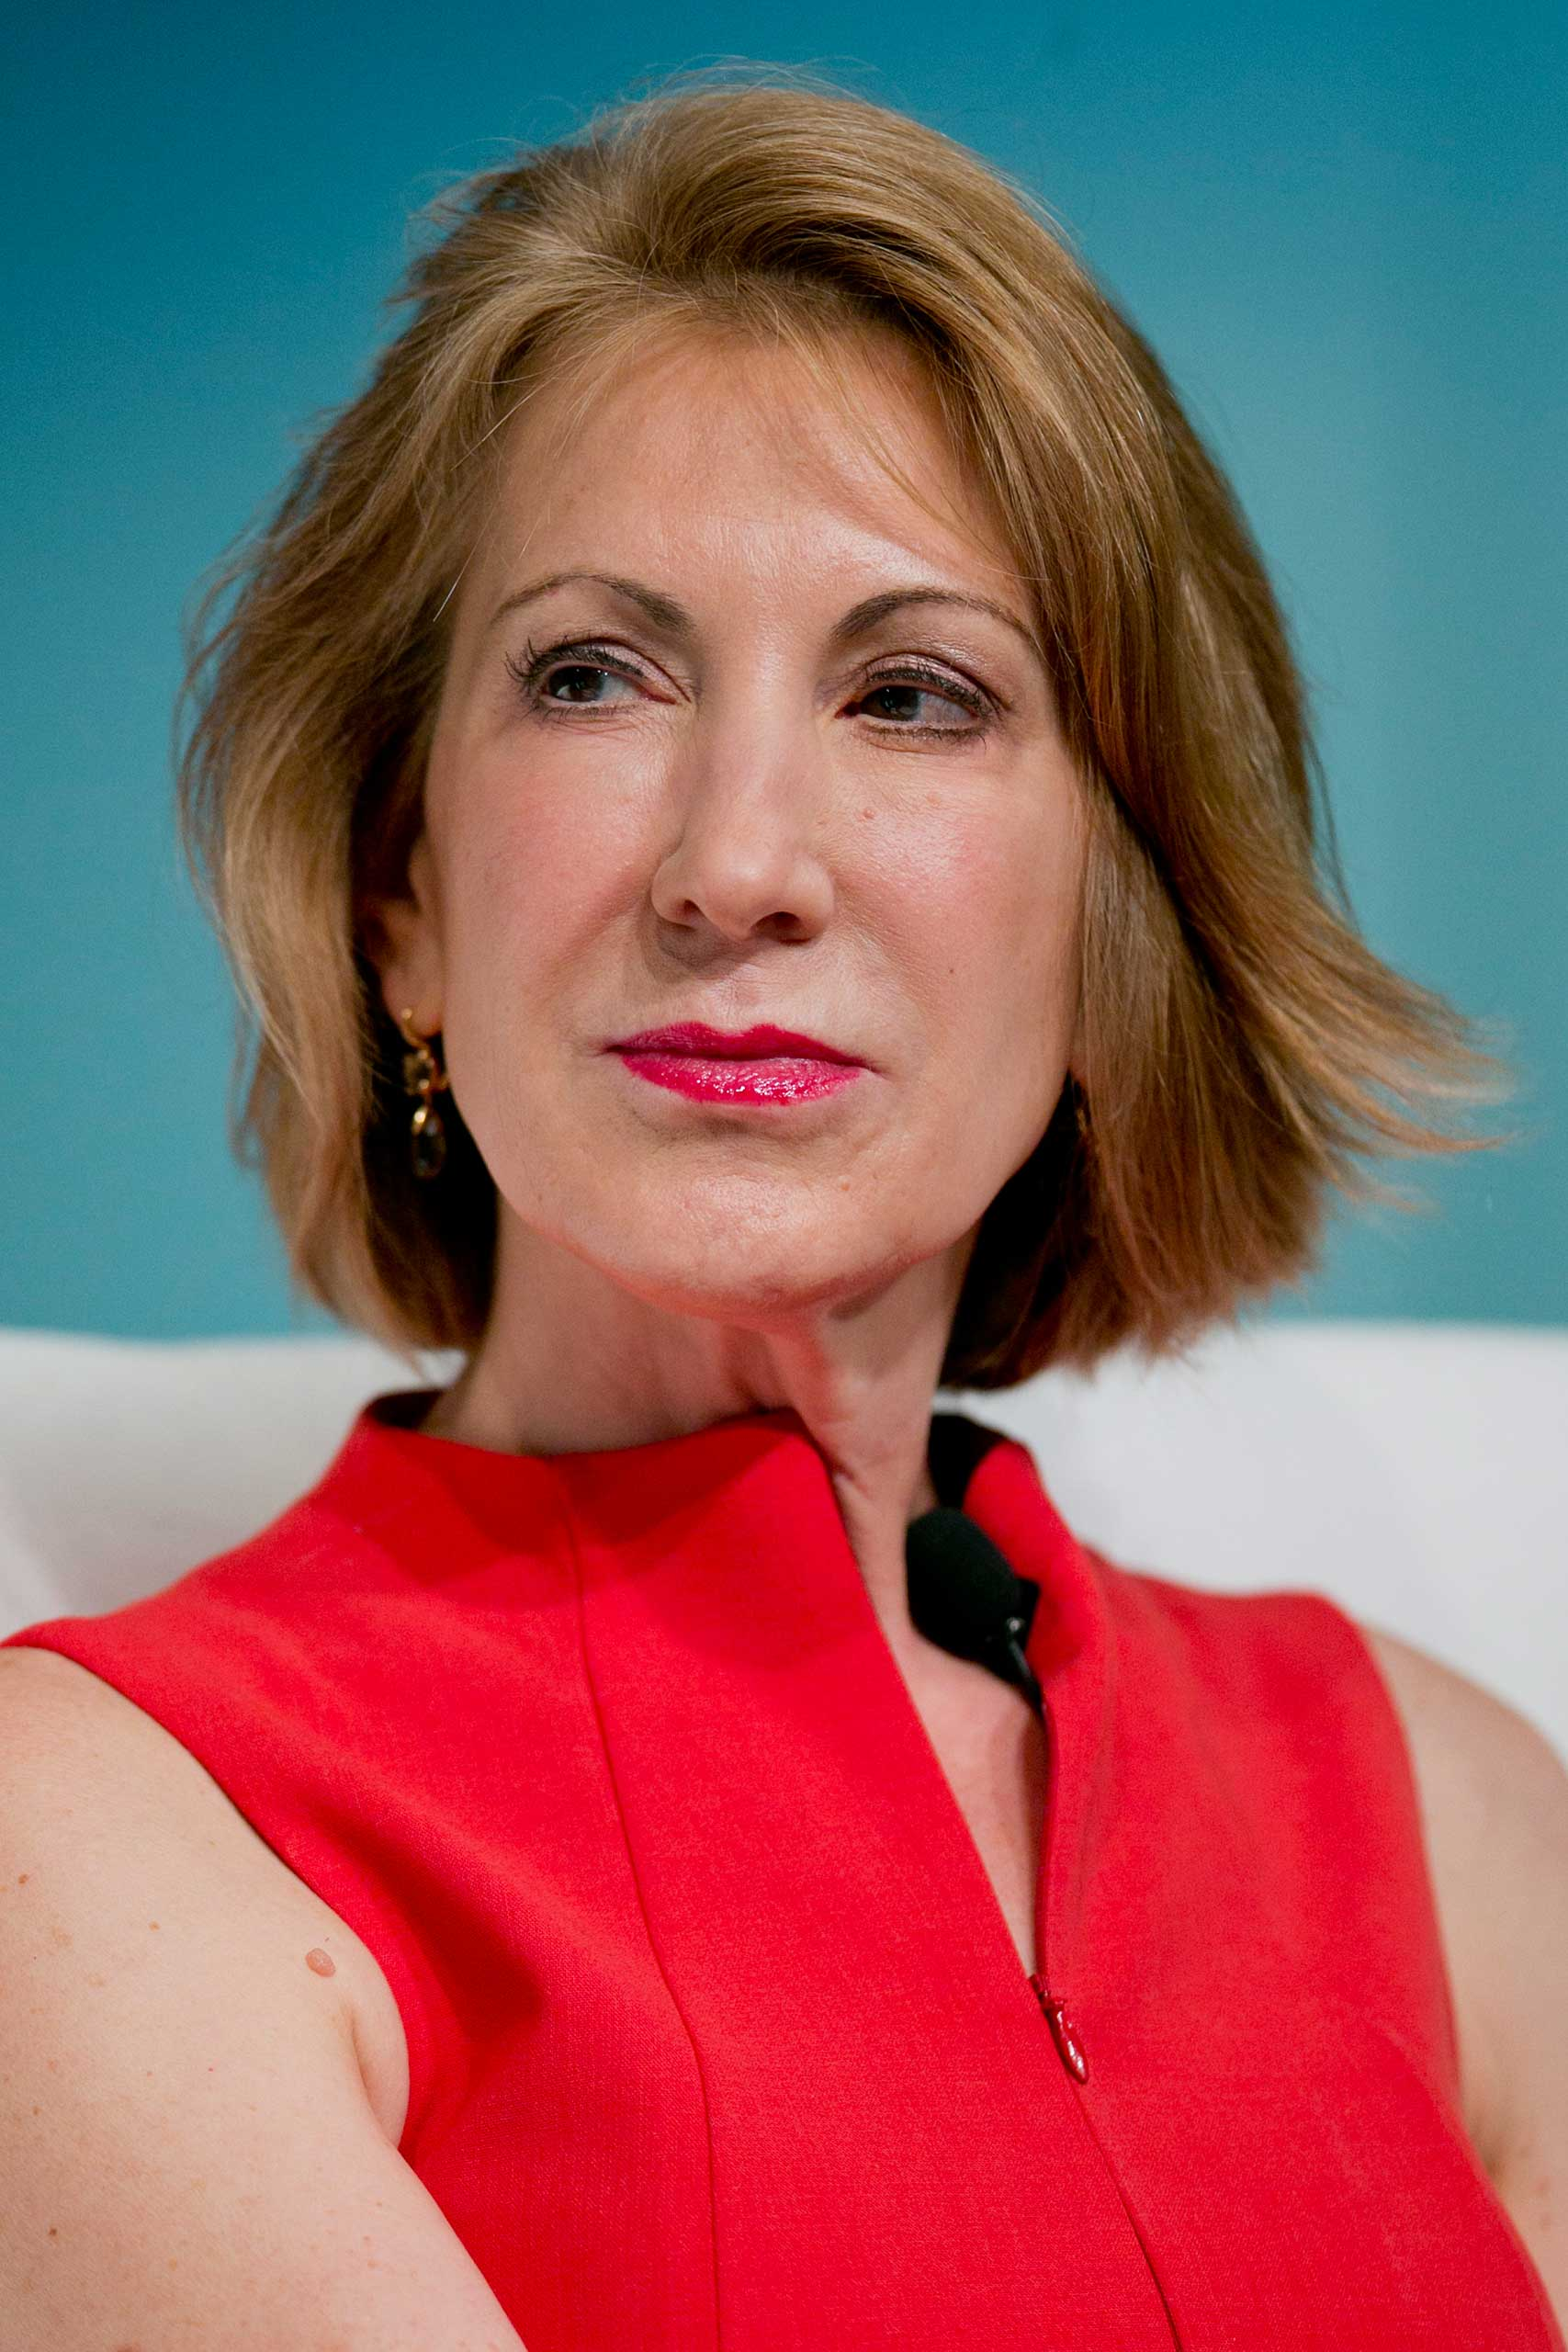 Carly Fiorina is the former CEO of Hewlitt-Packard and ran unsuccessfully for a Republican Senate seat from California in 2010.